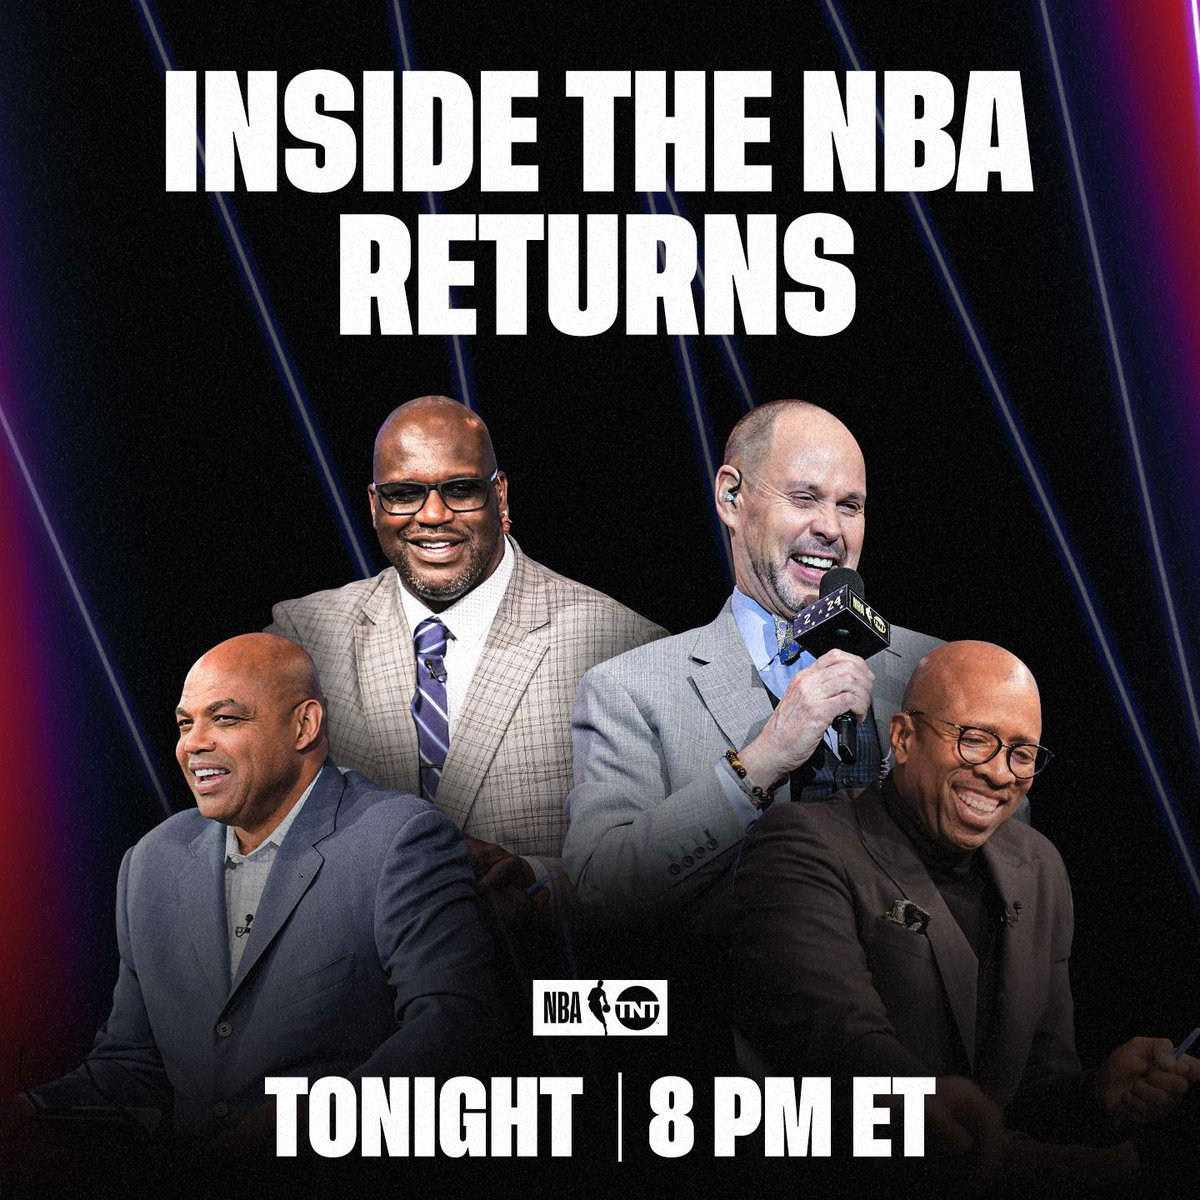 The Inside crew is back in action!🍿  Don't miss@SHAQ, @TheJetOnTNT, @TurnerSportsEJ and Chuck tonight at 8pm ET on TNT. https://t.co/71On2HfXZ1